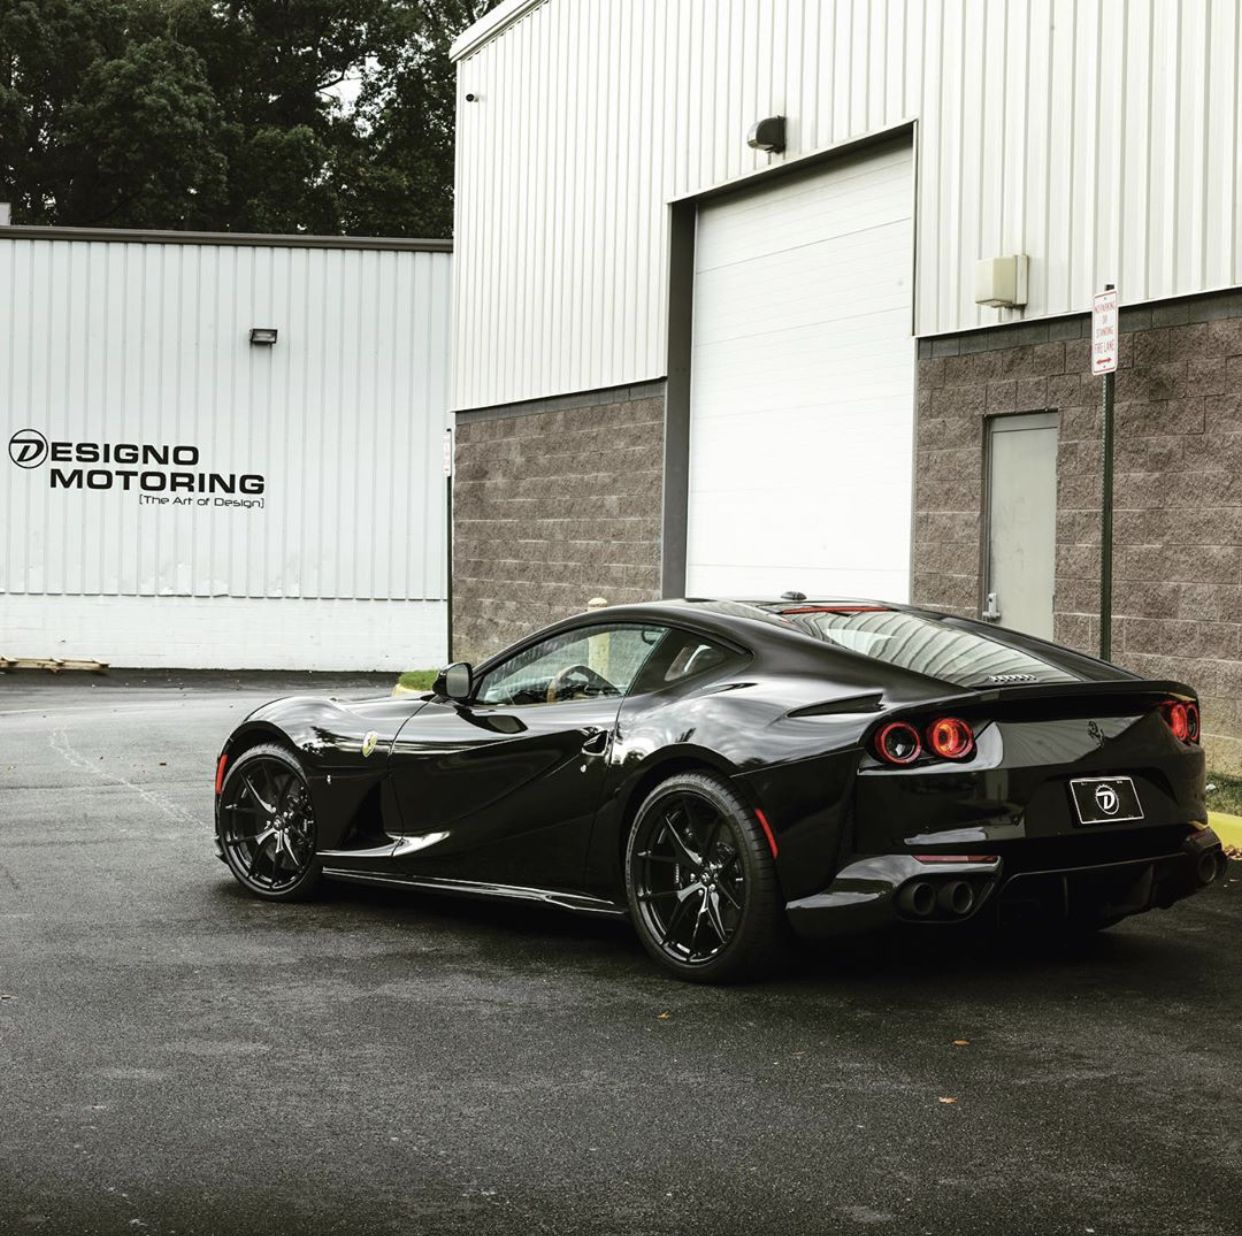 Ferrari 812 Superfast Painted In Nero W A Set Of P101 Hre Wheels